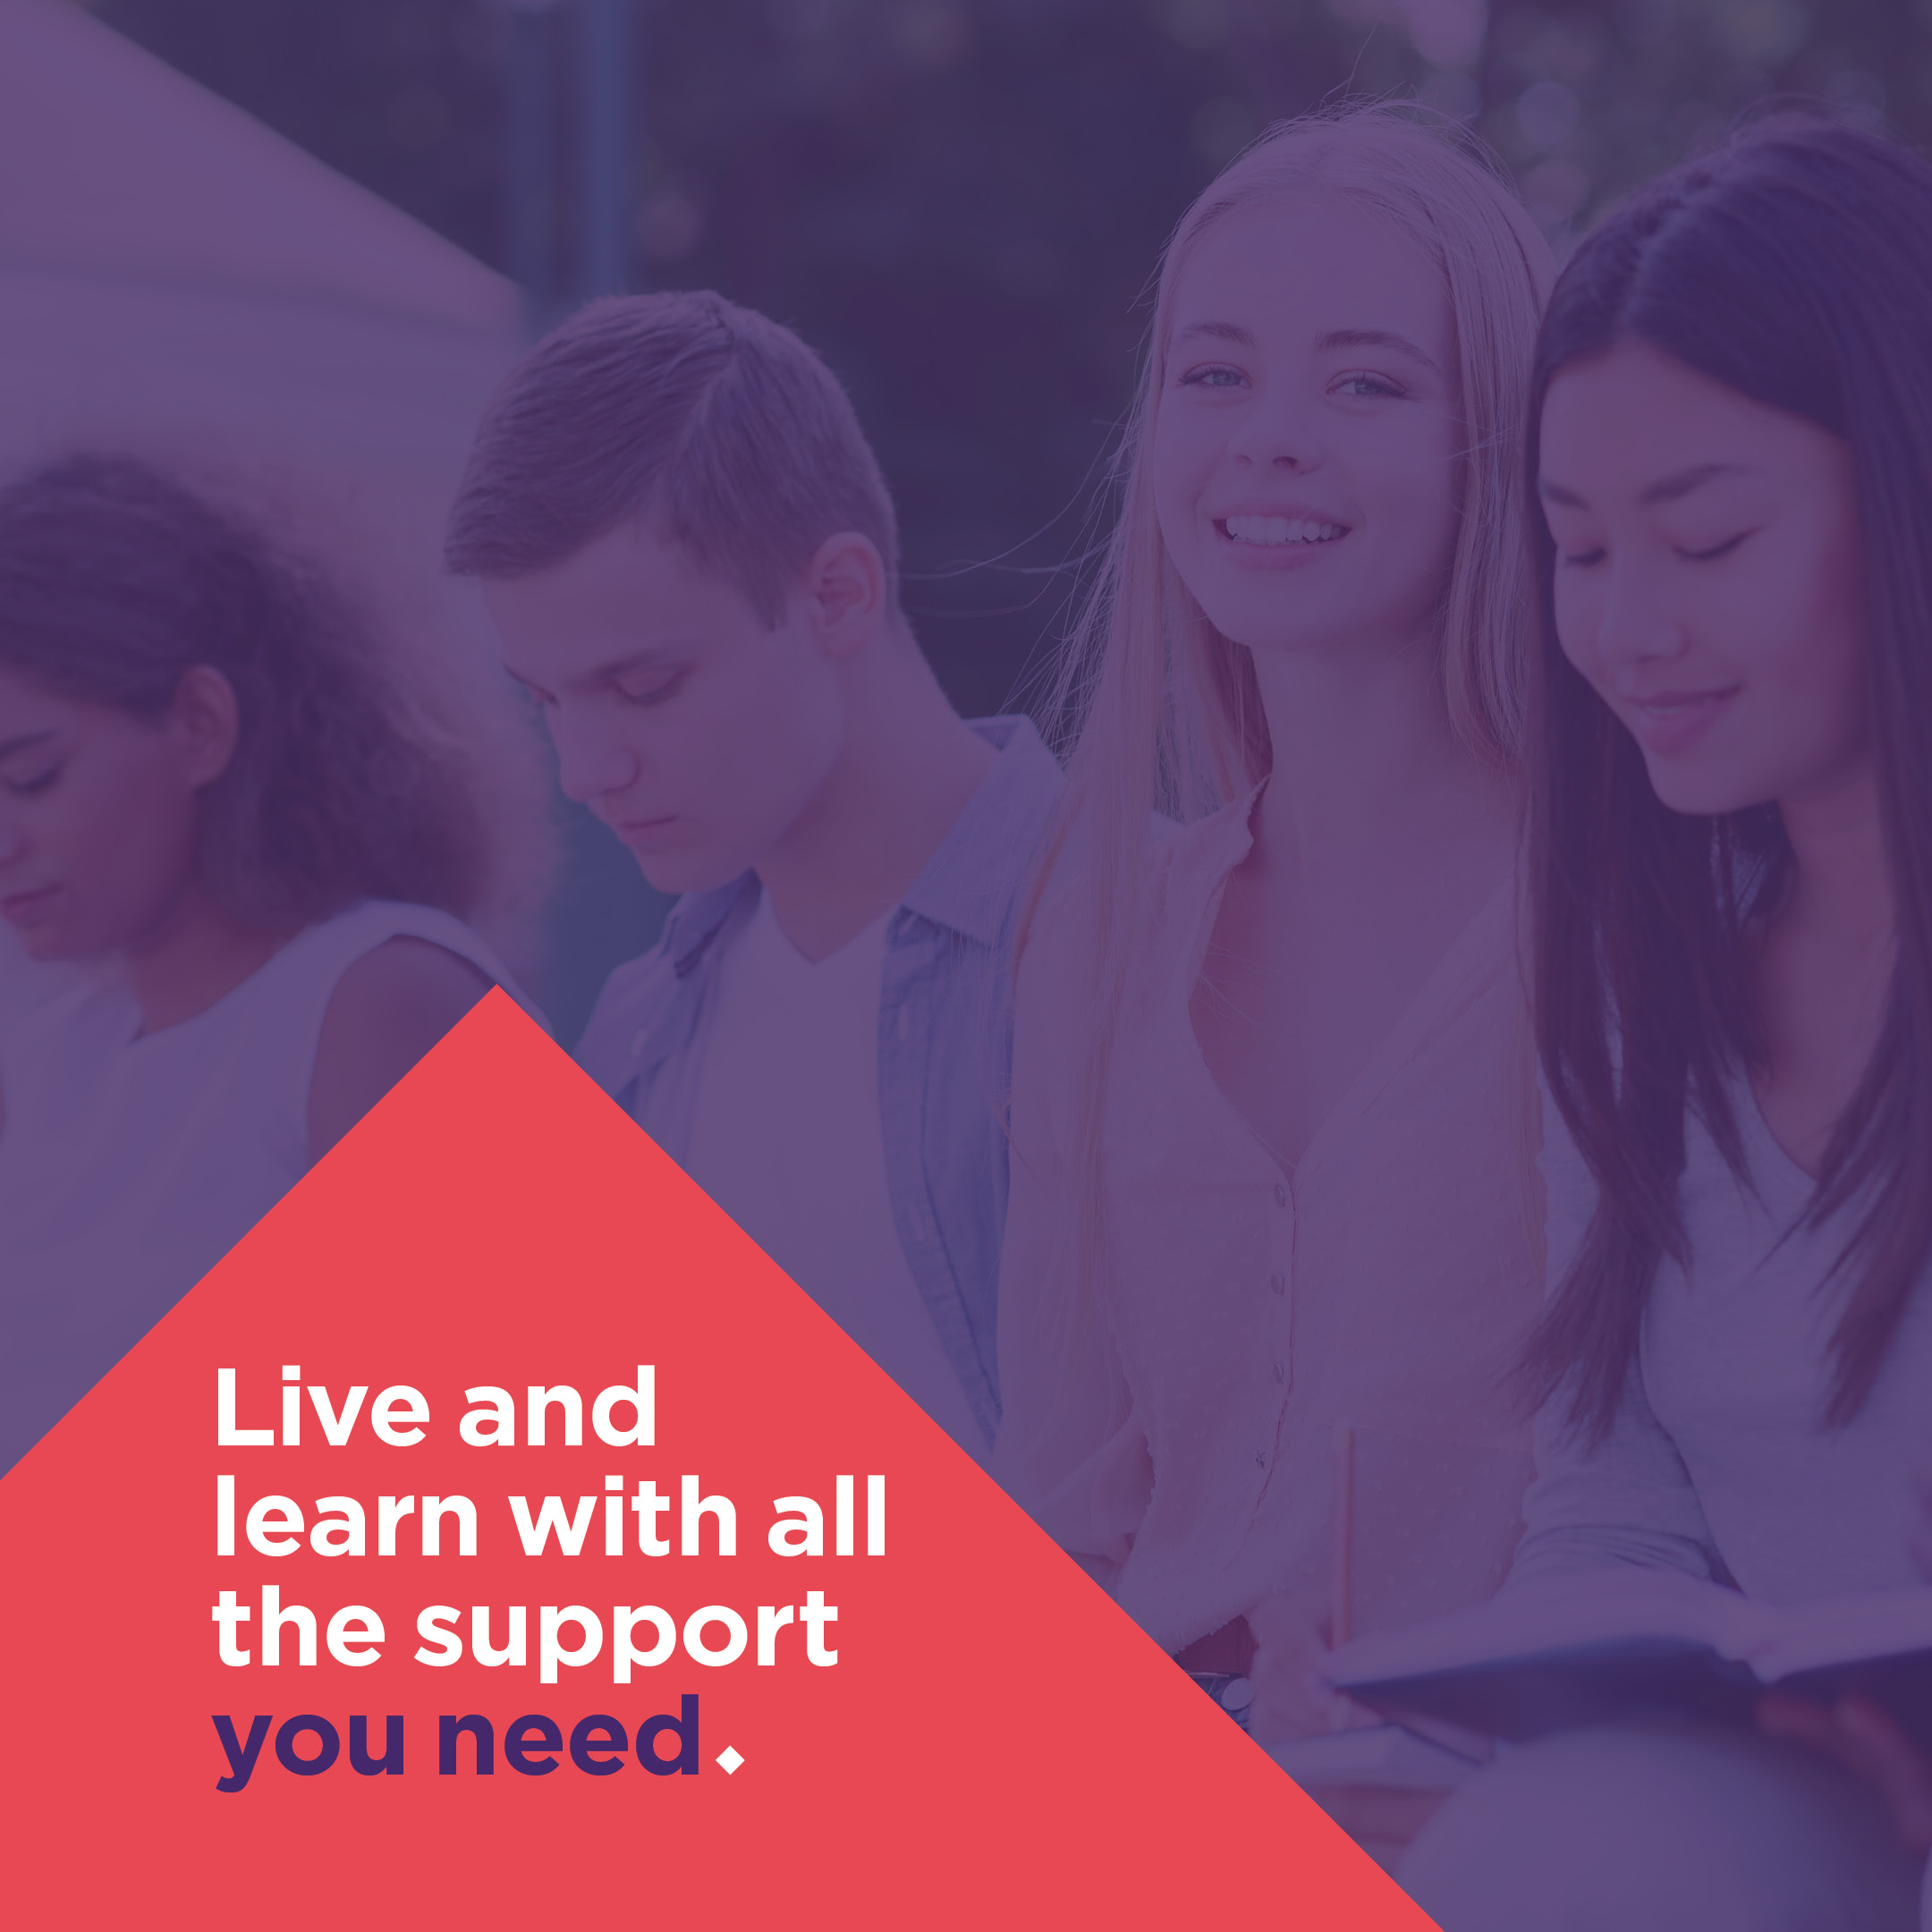 Live and learn with all the support you need